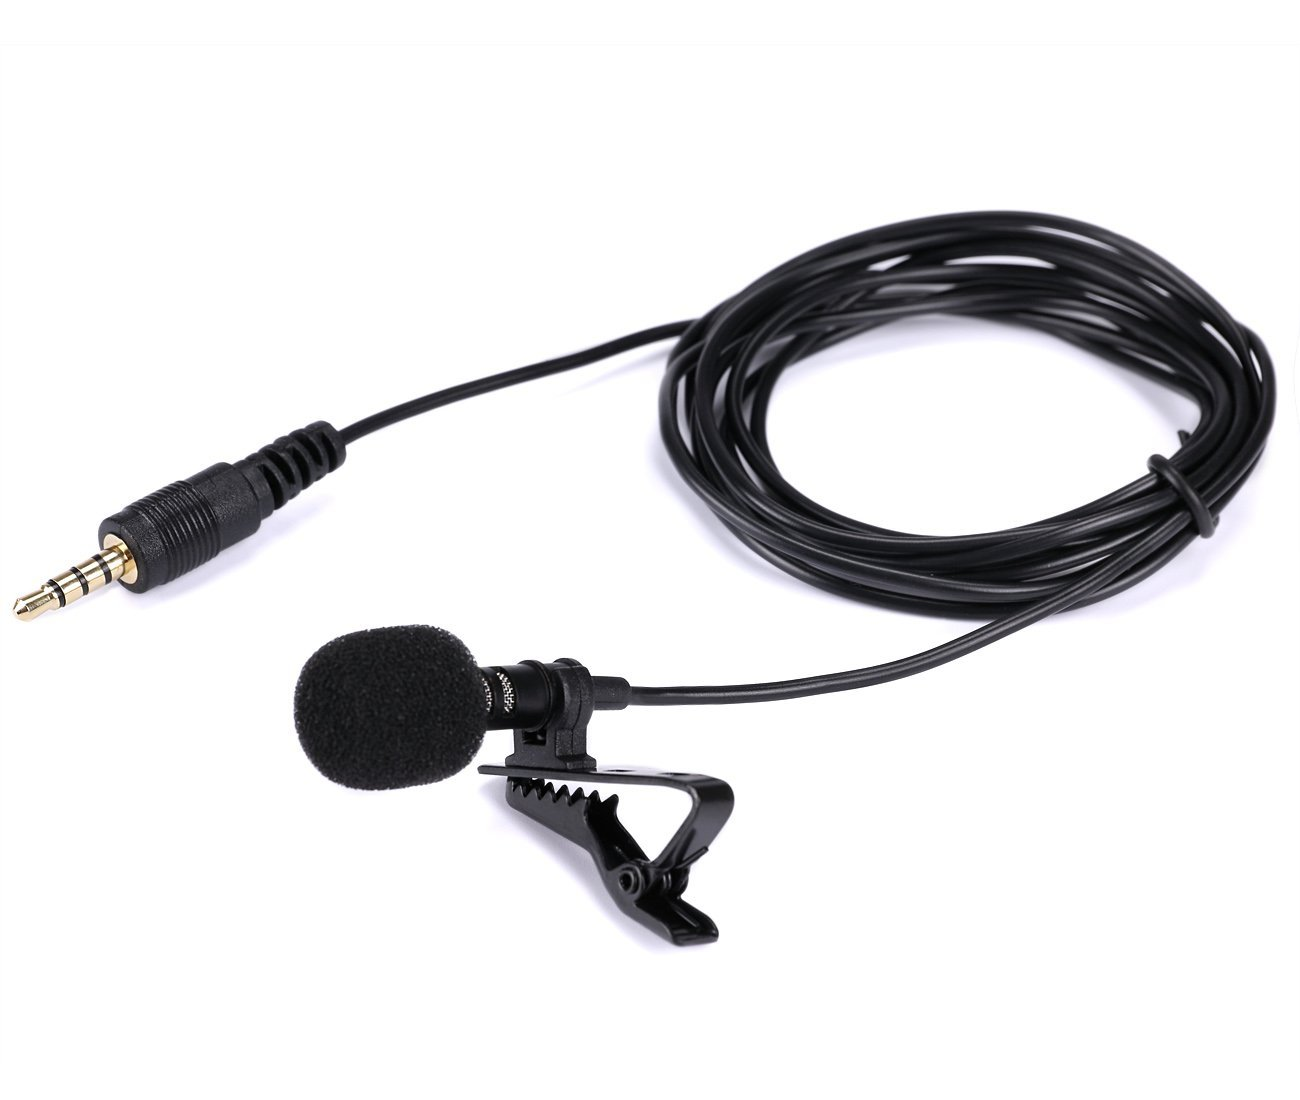 Lavalier Microphone, Gyvazla 3.5mm Lapel Clip-on Omnidirectional Condenser Microphone for iPhone & Android Smartphones or Any Other Mobile Device 8